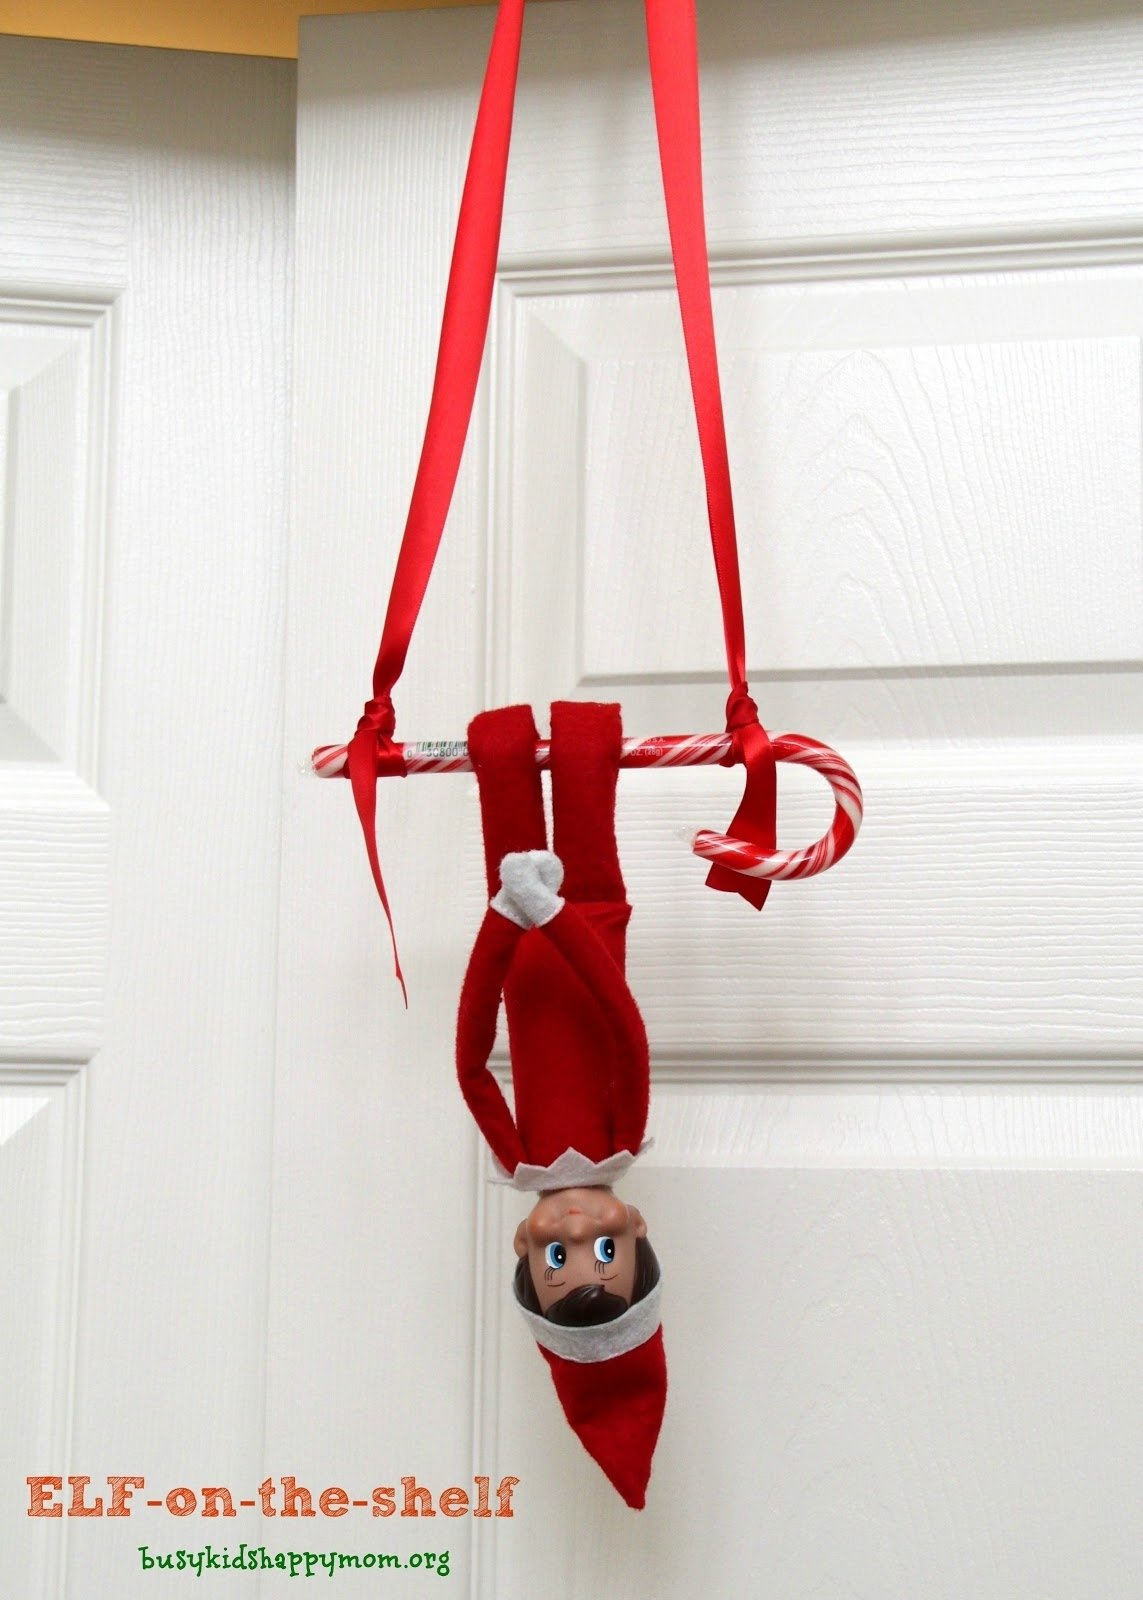 10 Elegant Elf On A Shelf Ideas stuck need new ideas for your elf on the shelf 6 2020